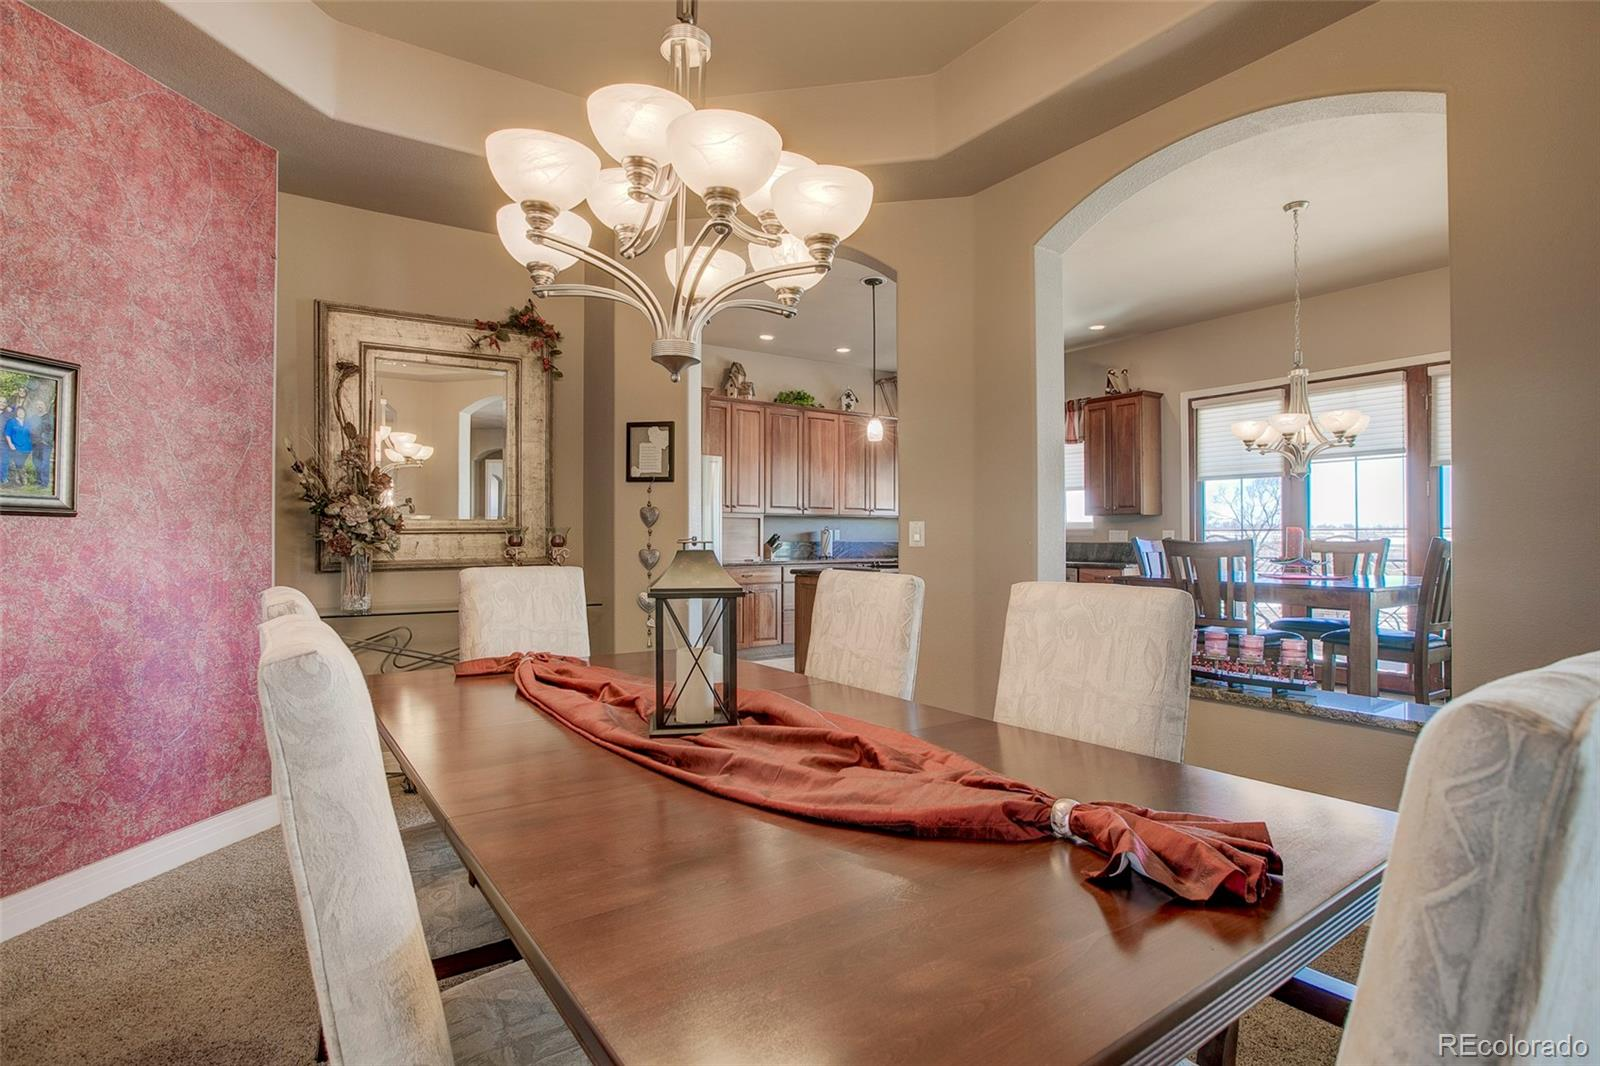 MLS# 7126152 - 11 - 5816 W Conservation Drive, Frederick, CO 80504